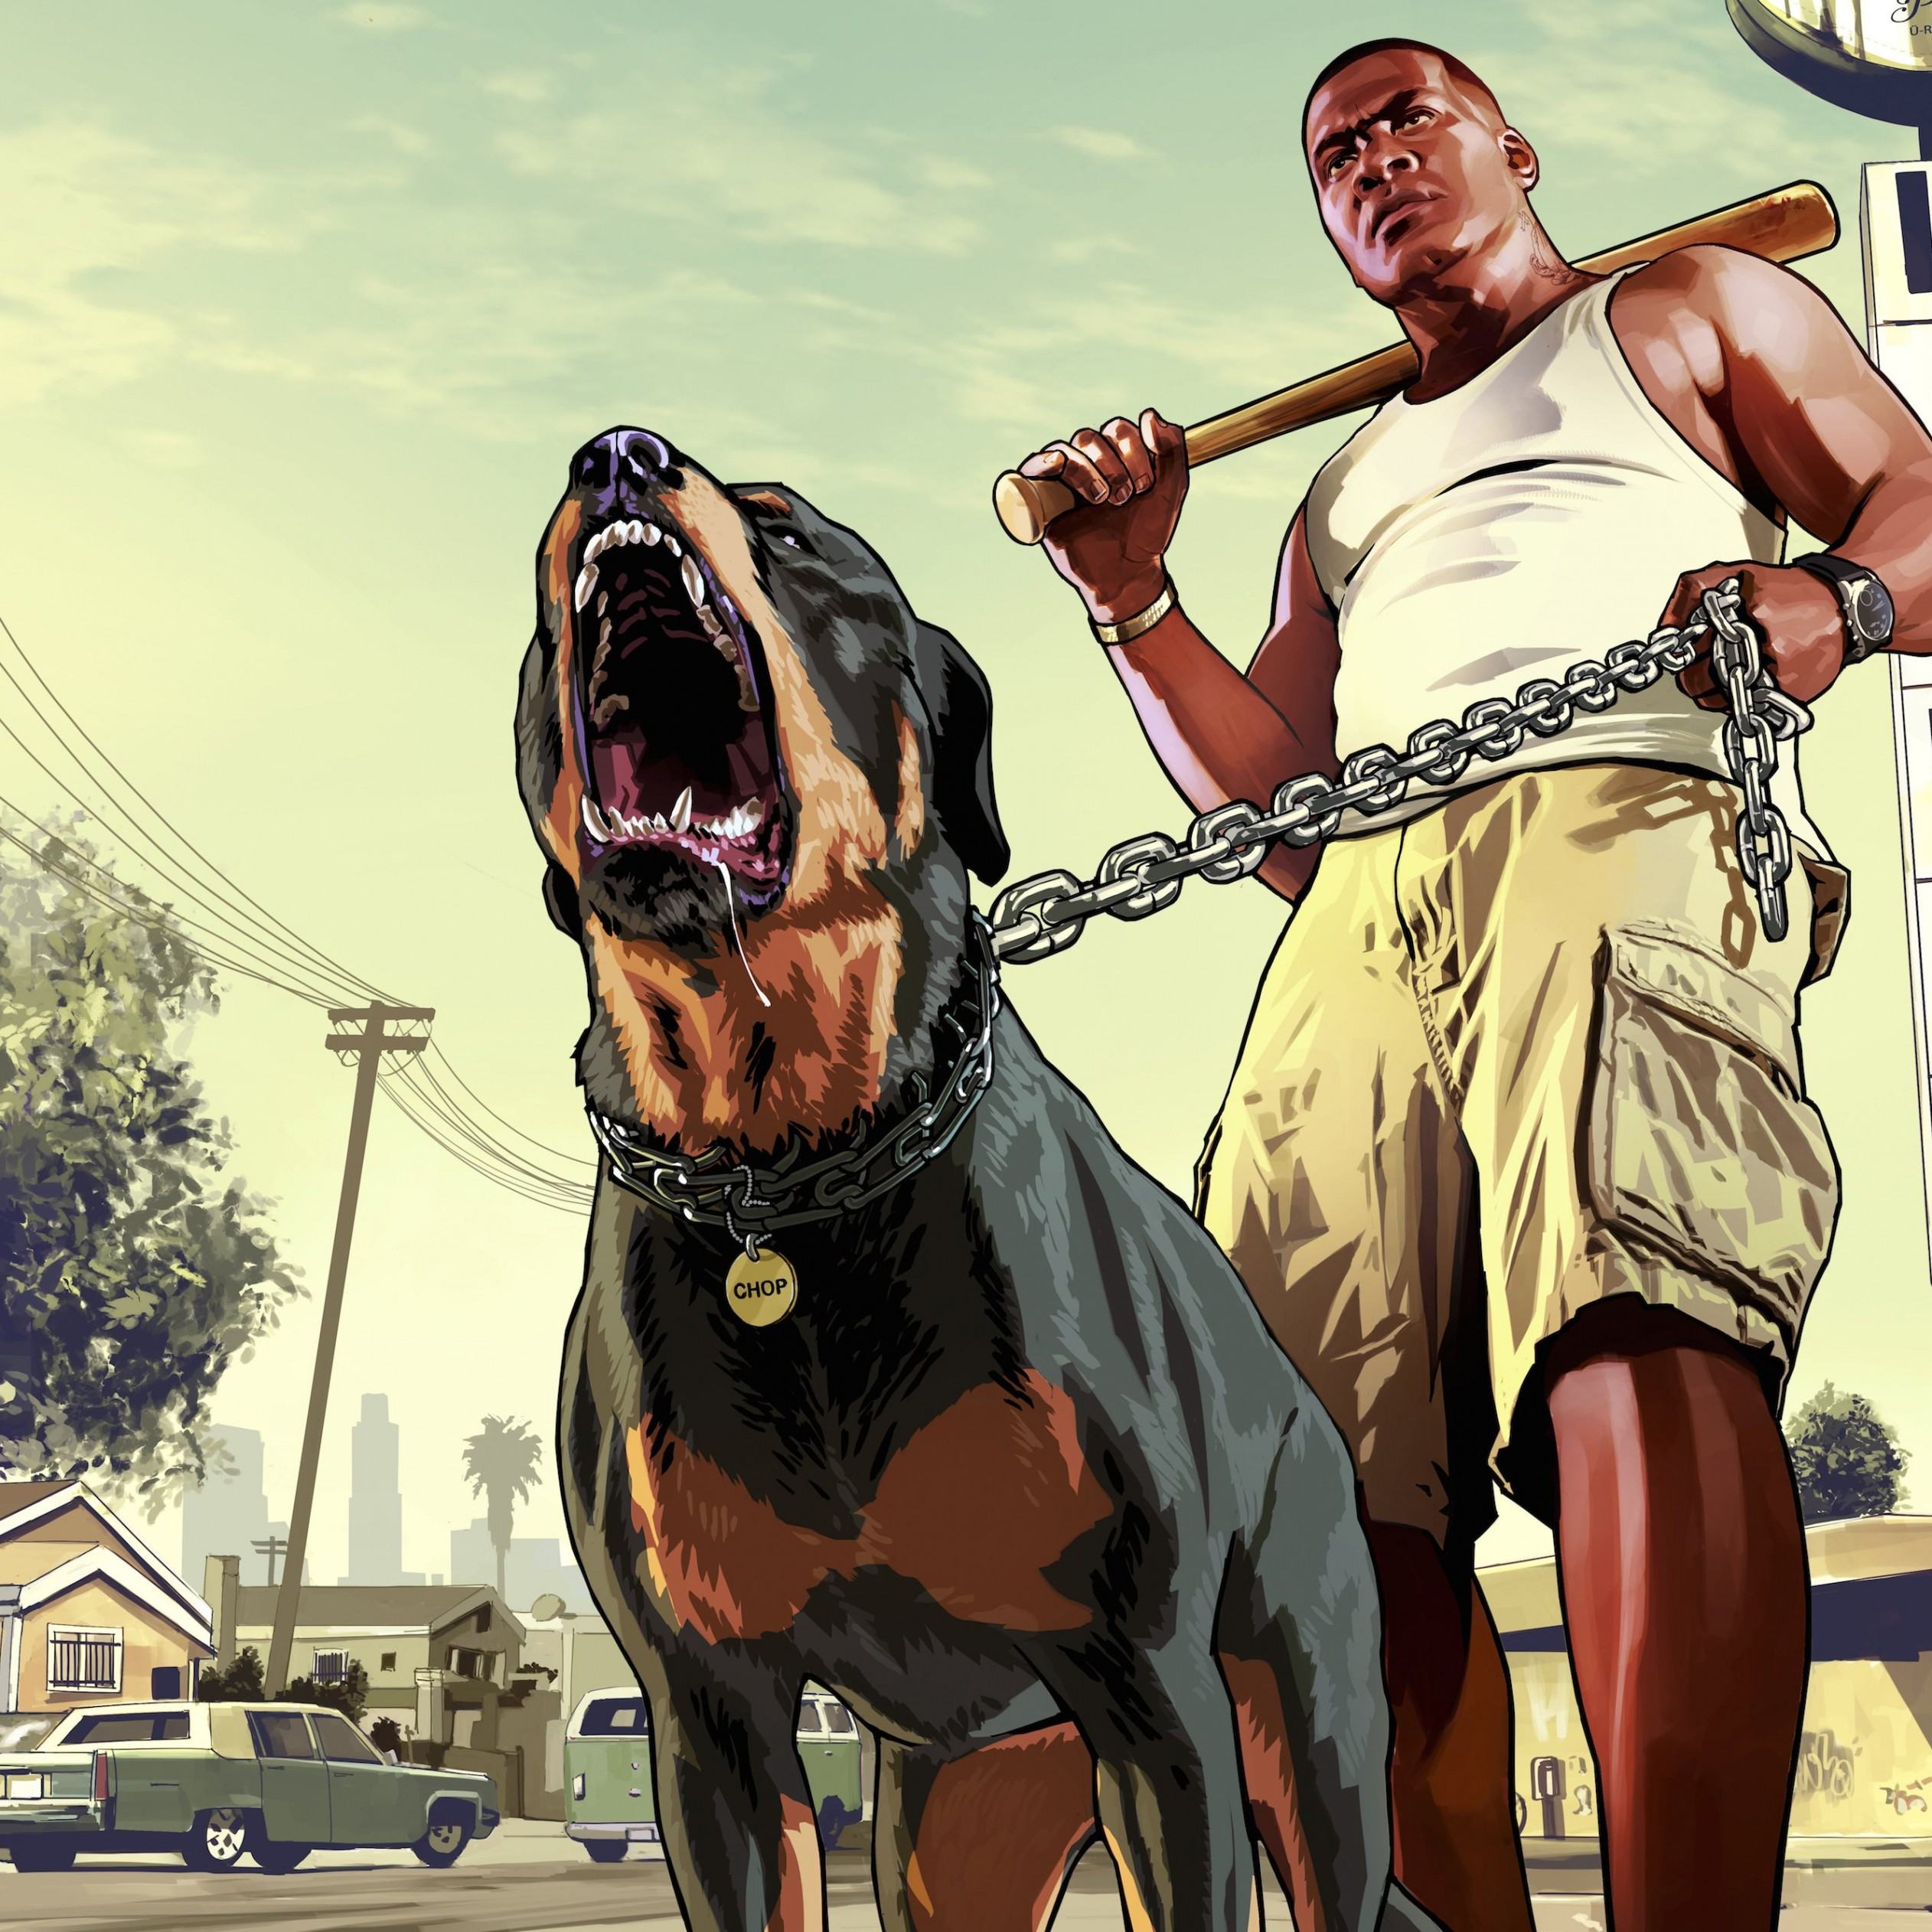 GTA 5 : Franklin Clinton Wallpaper for Apple iPad Air